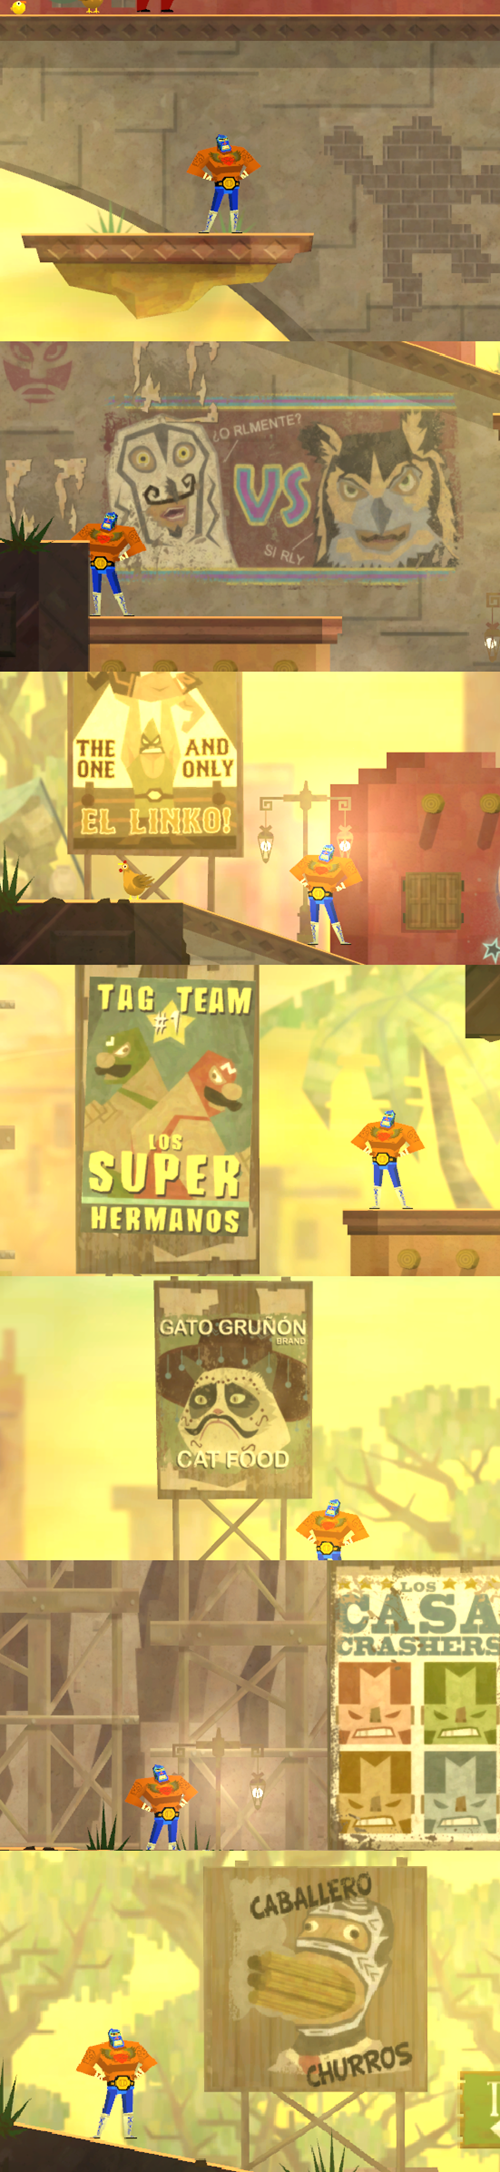 guacamelee cameos easter eggs references - 7840939264